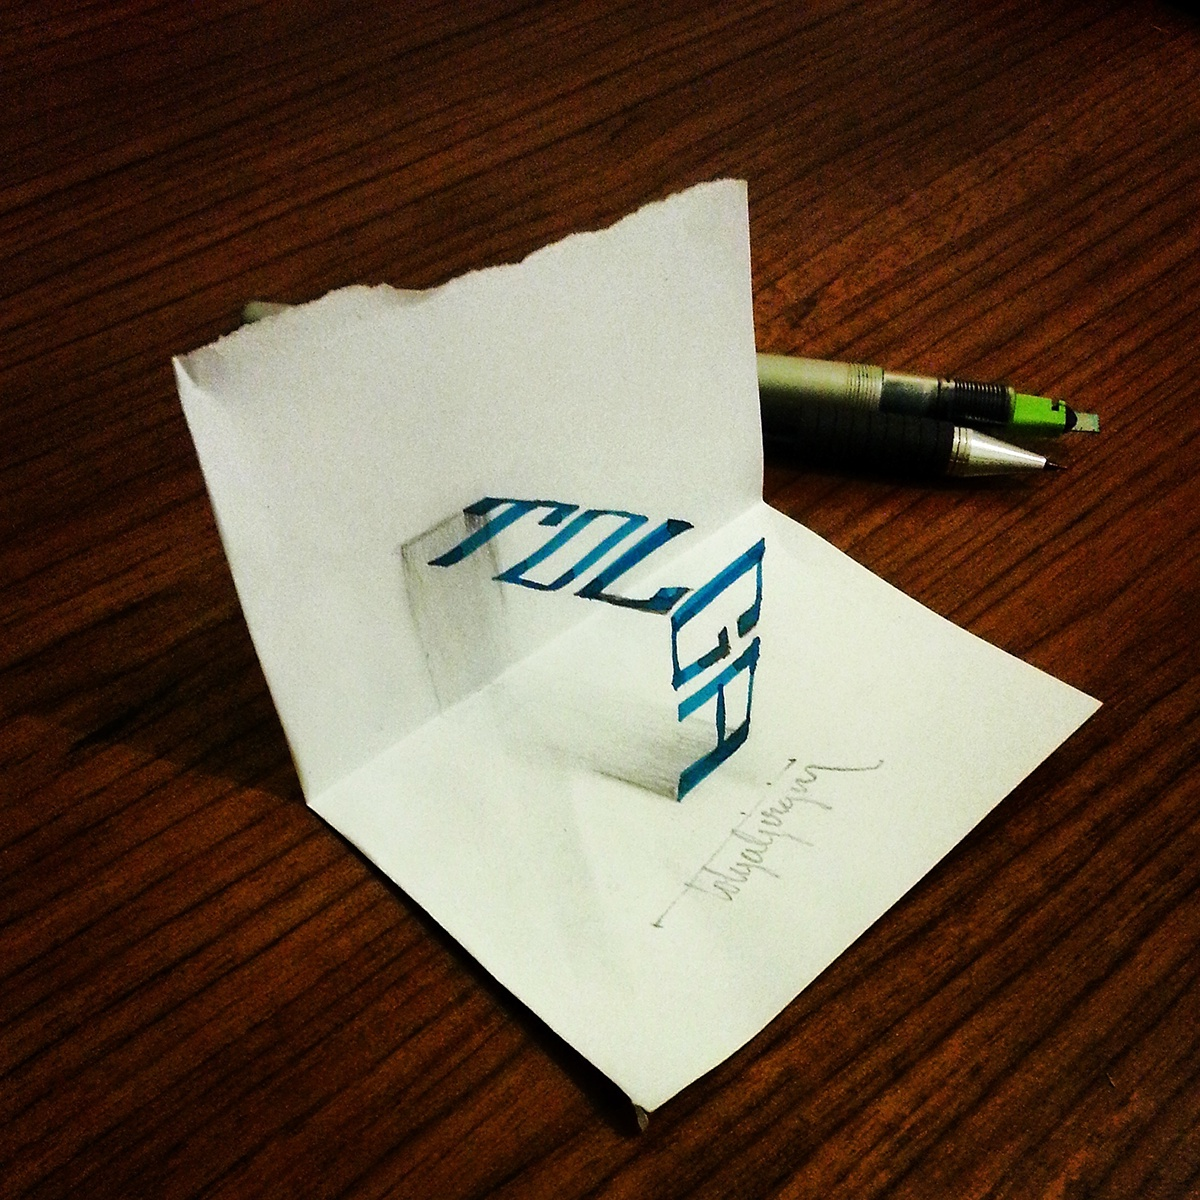 Insane 3d Calligraphy That Curls Right Off The Page